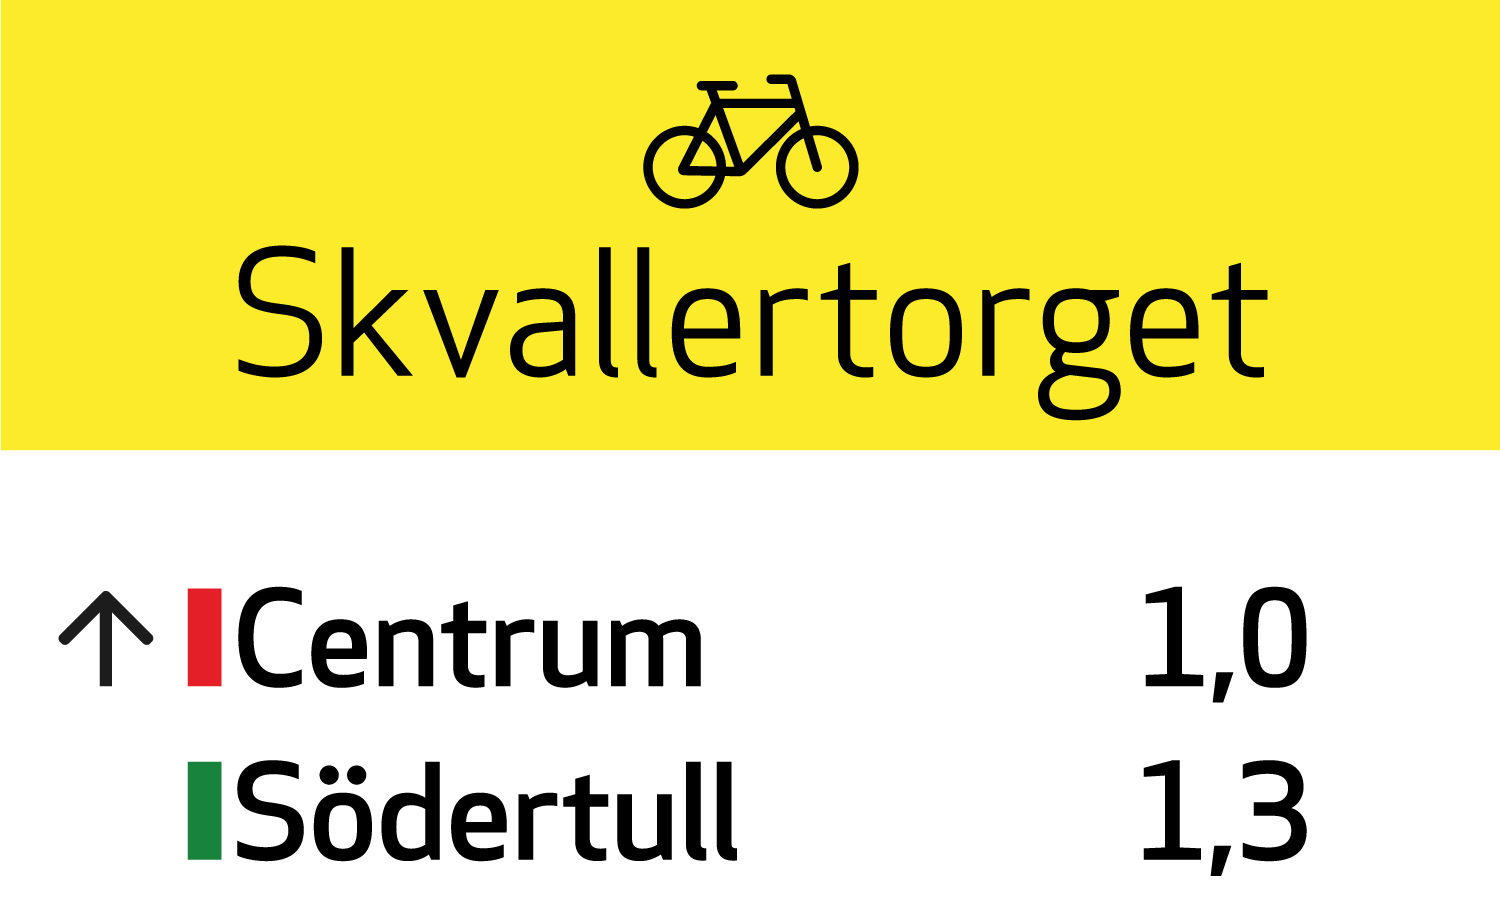 Bike signage for City of Norrköping by Viktor Lanneld and Vicky Trouerbach